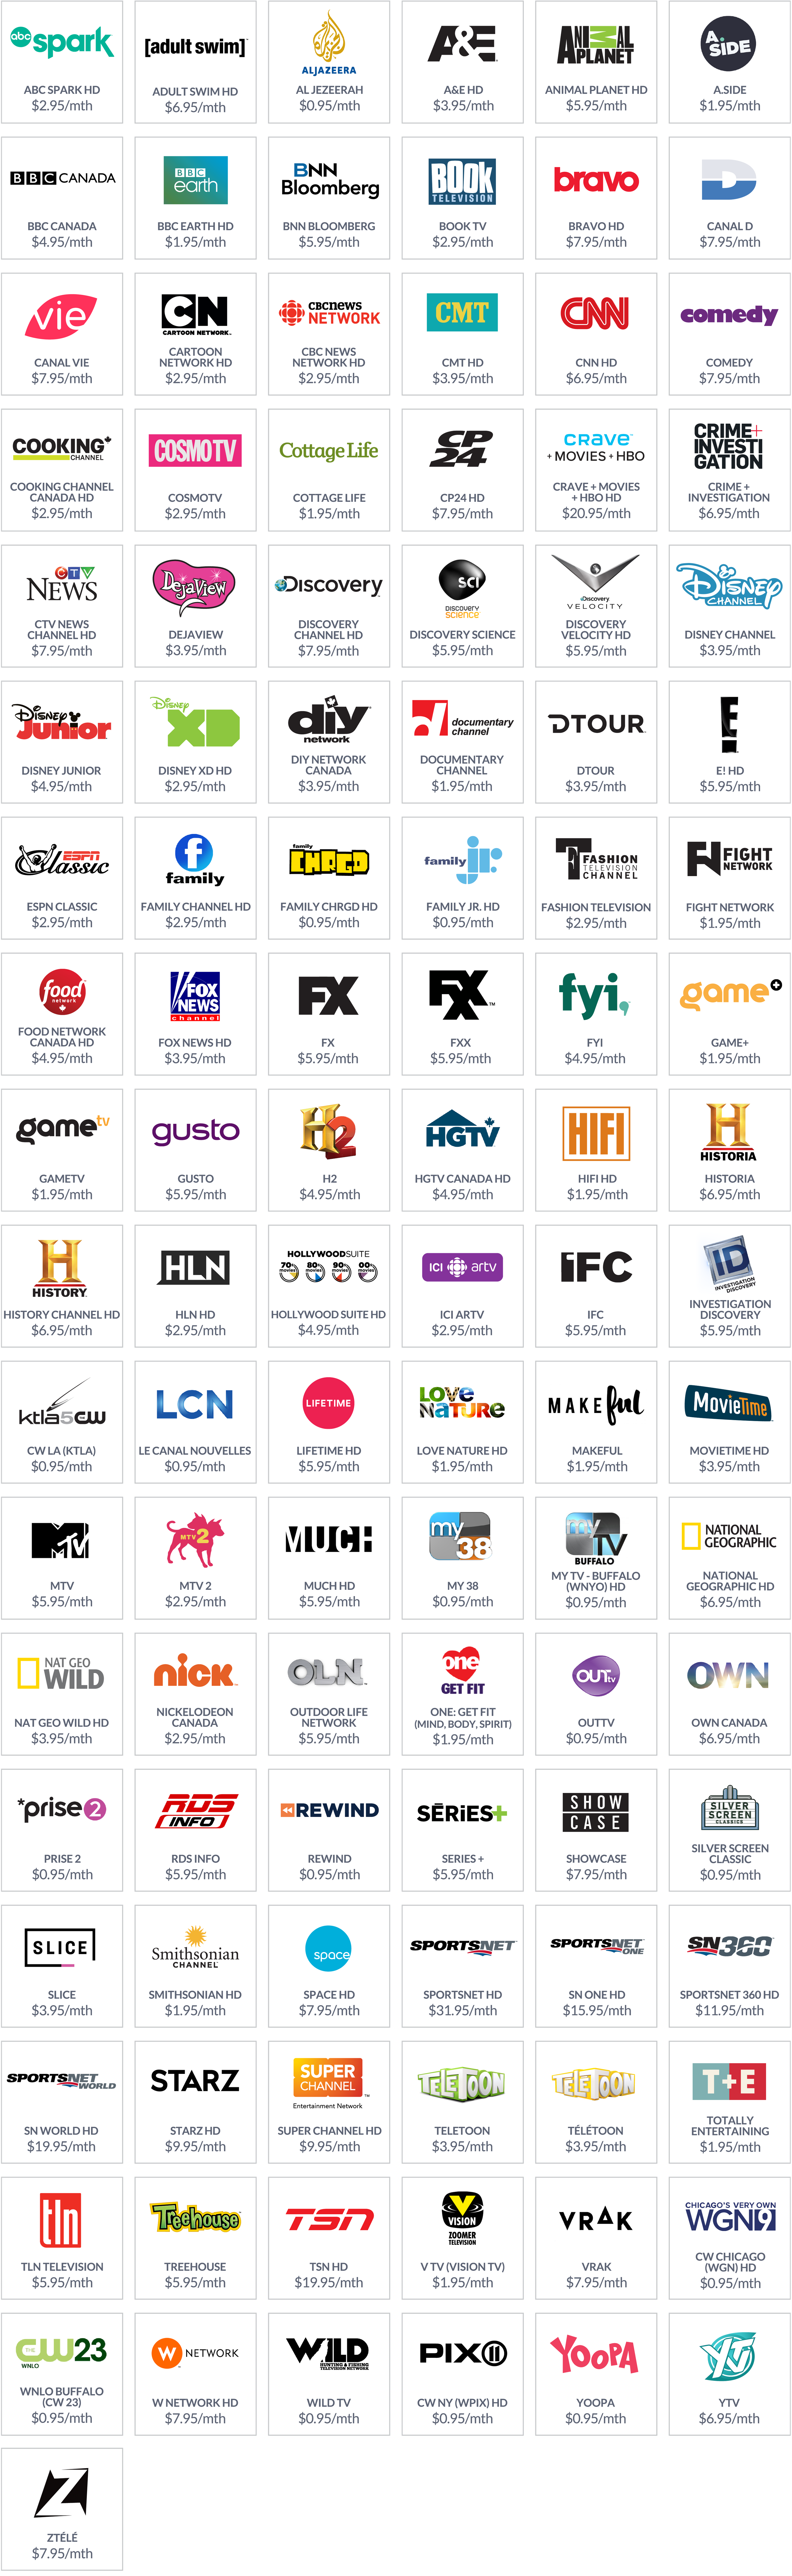 To view all international channels click here